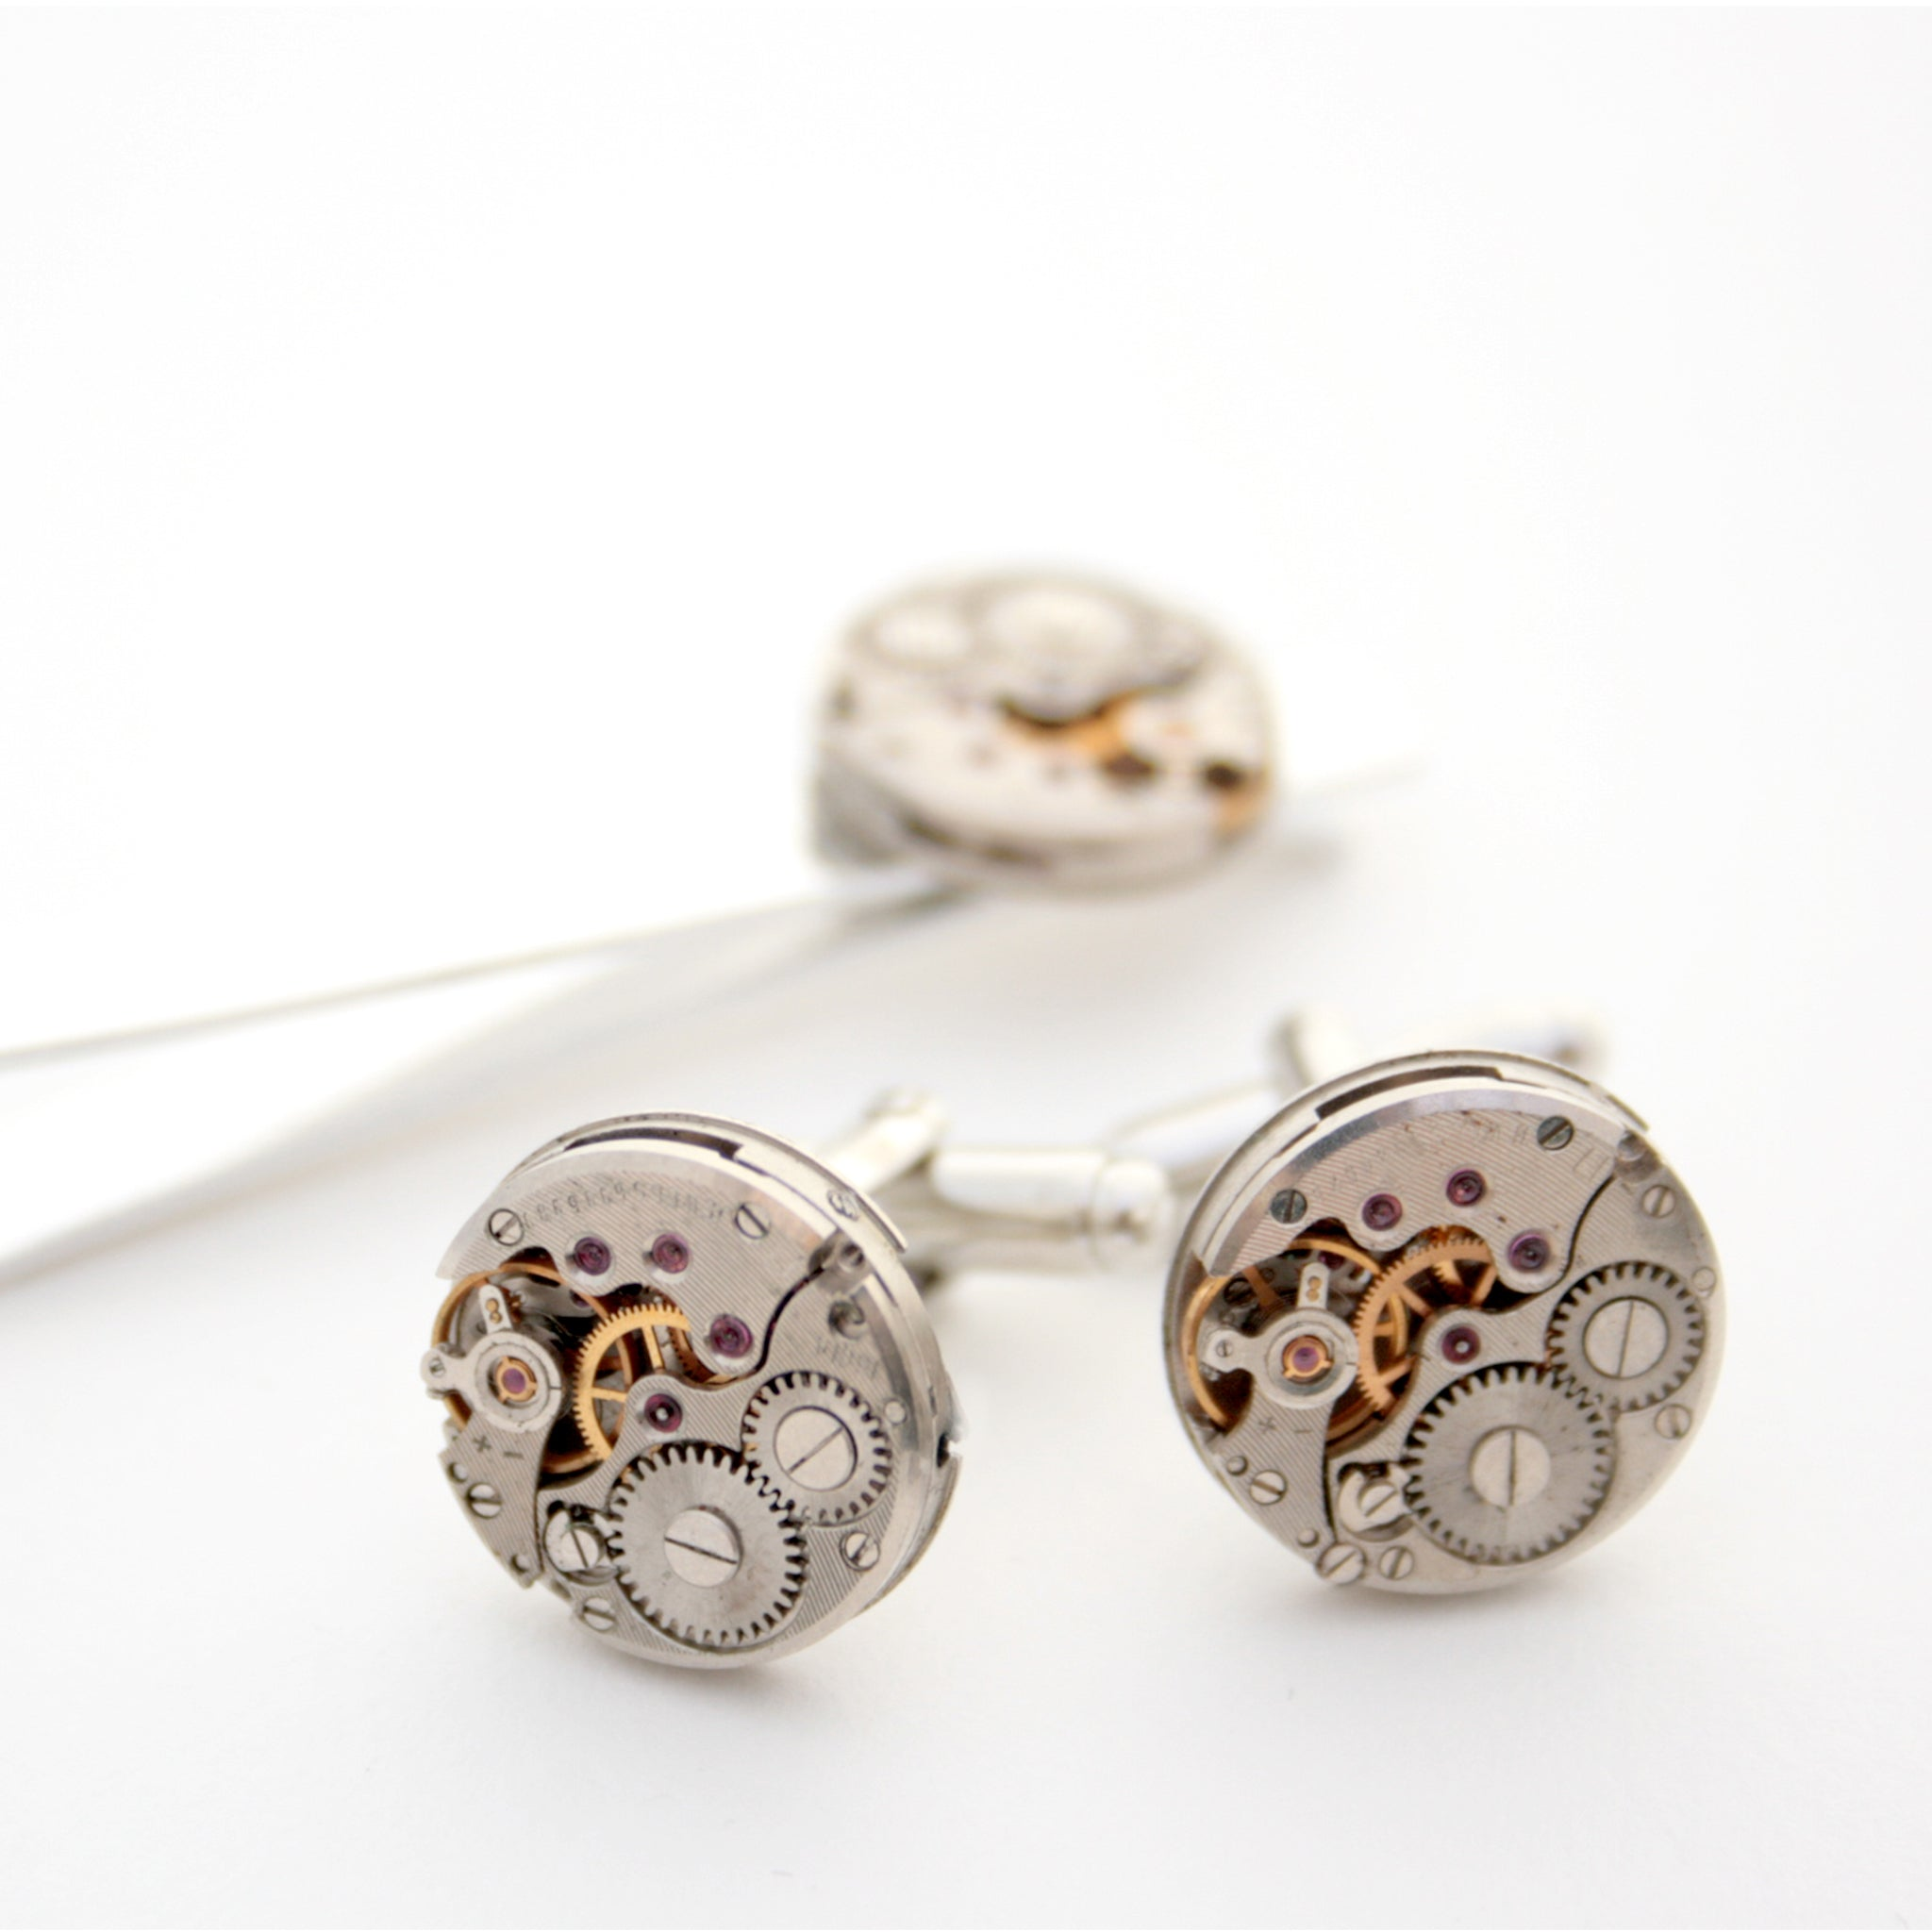 Tie Clip and Cufflinks with Steampunk Watch Movements